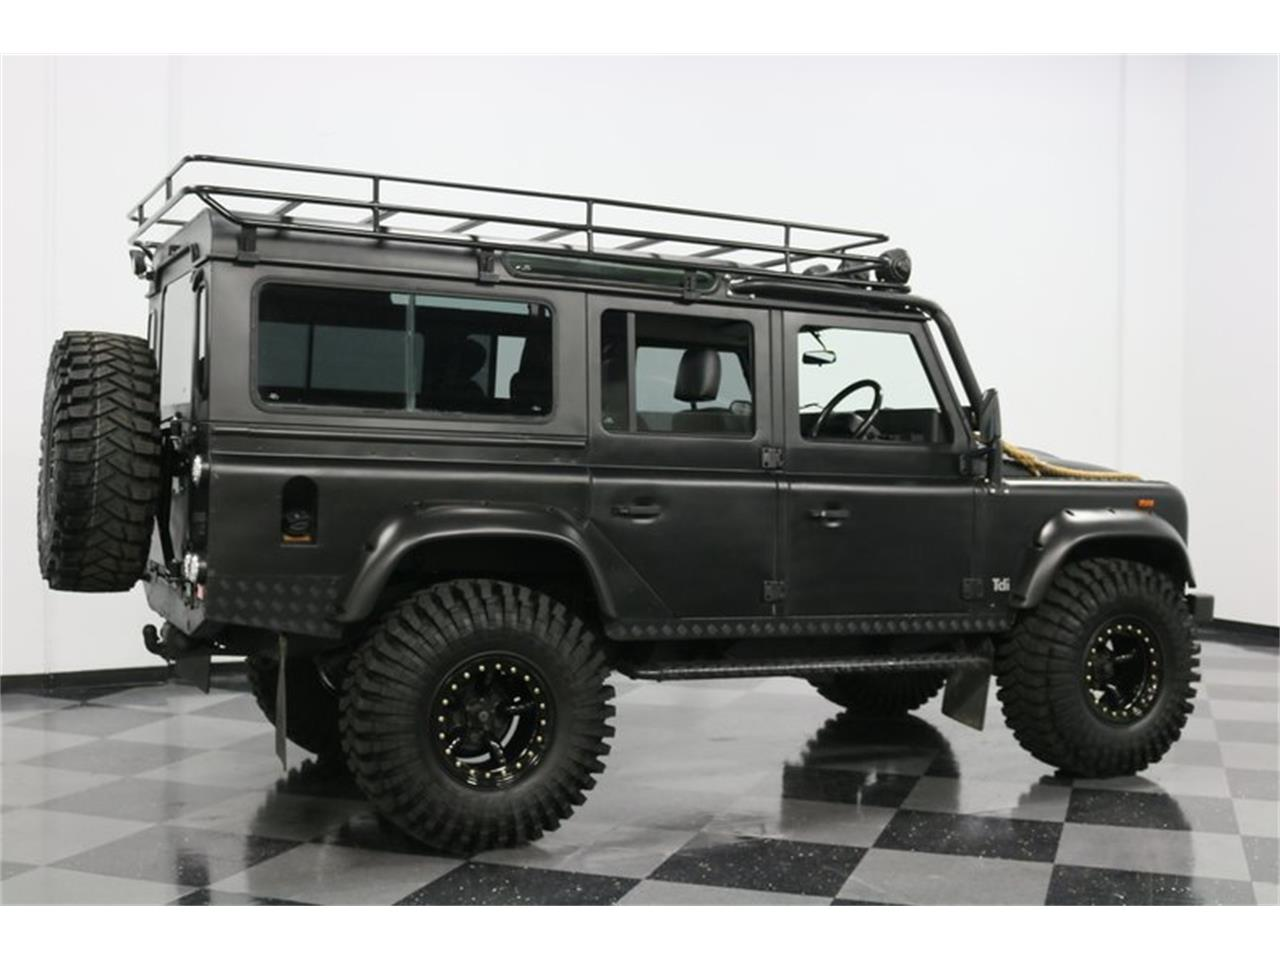 Large Picture of '91 Land Rover Defender located in Texas - $114,995.00 Offered by Streetside Classics - Dallas / Fort Worth - PD5S